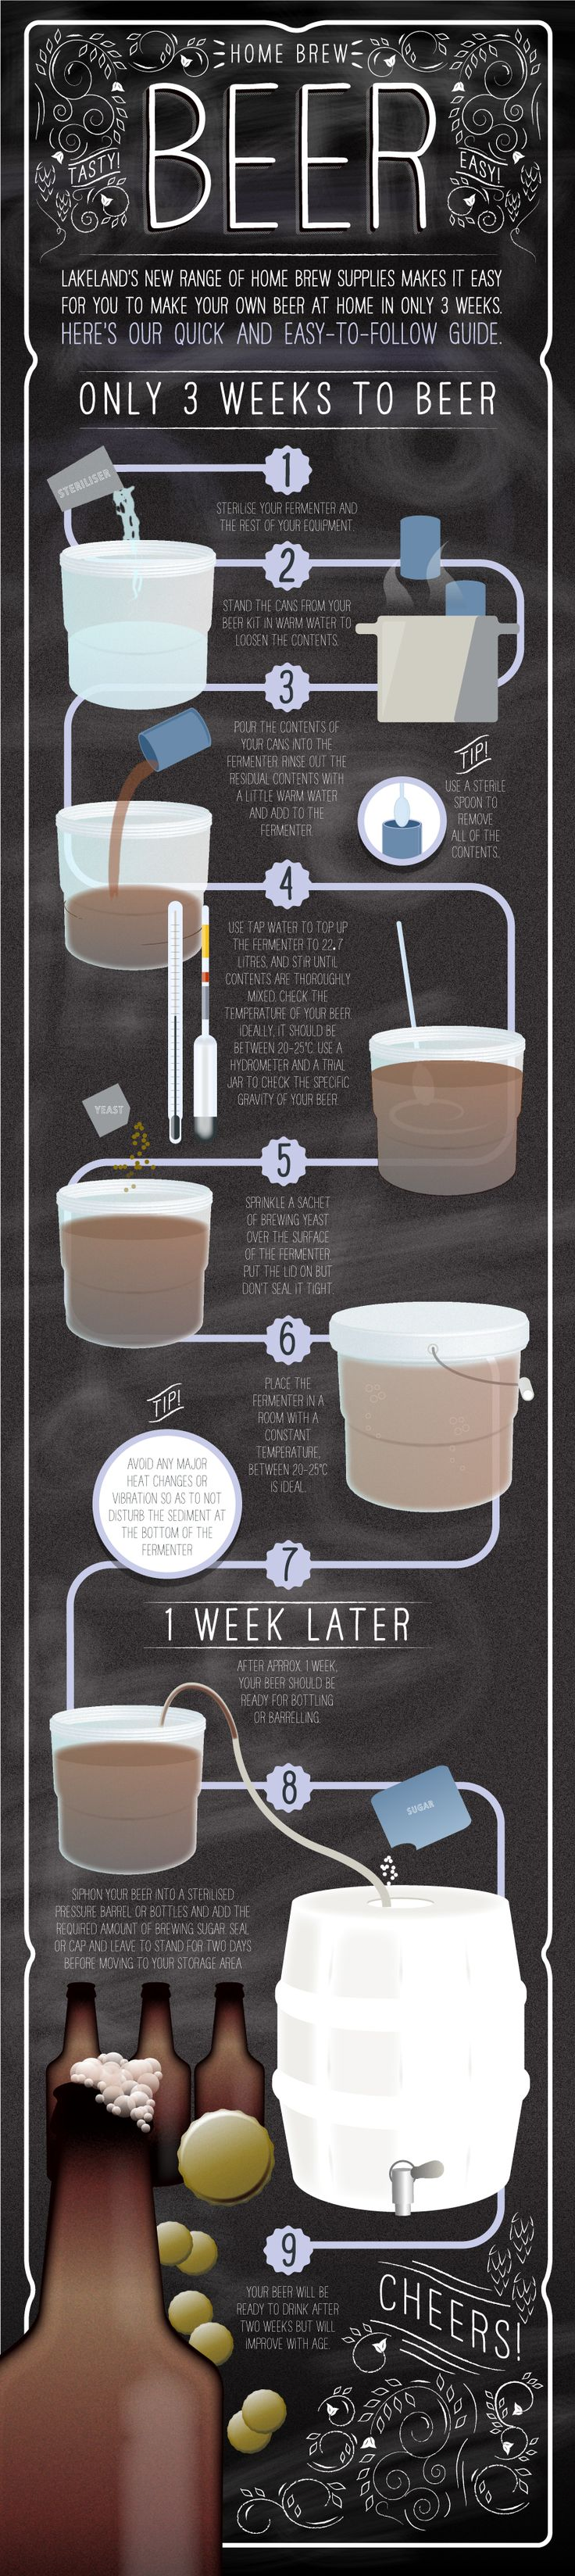 Homebrewing | Tipsographic | More homebrewing tips at http://www.tipsographic.com/